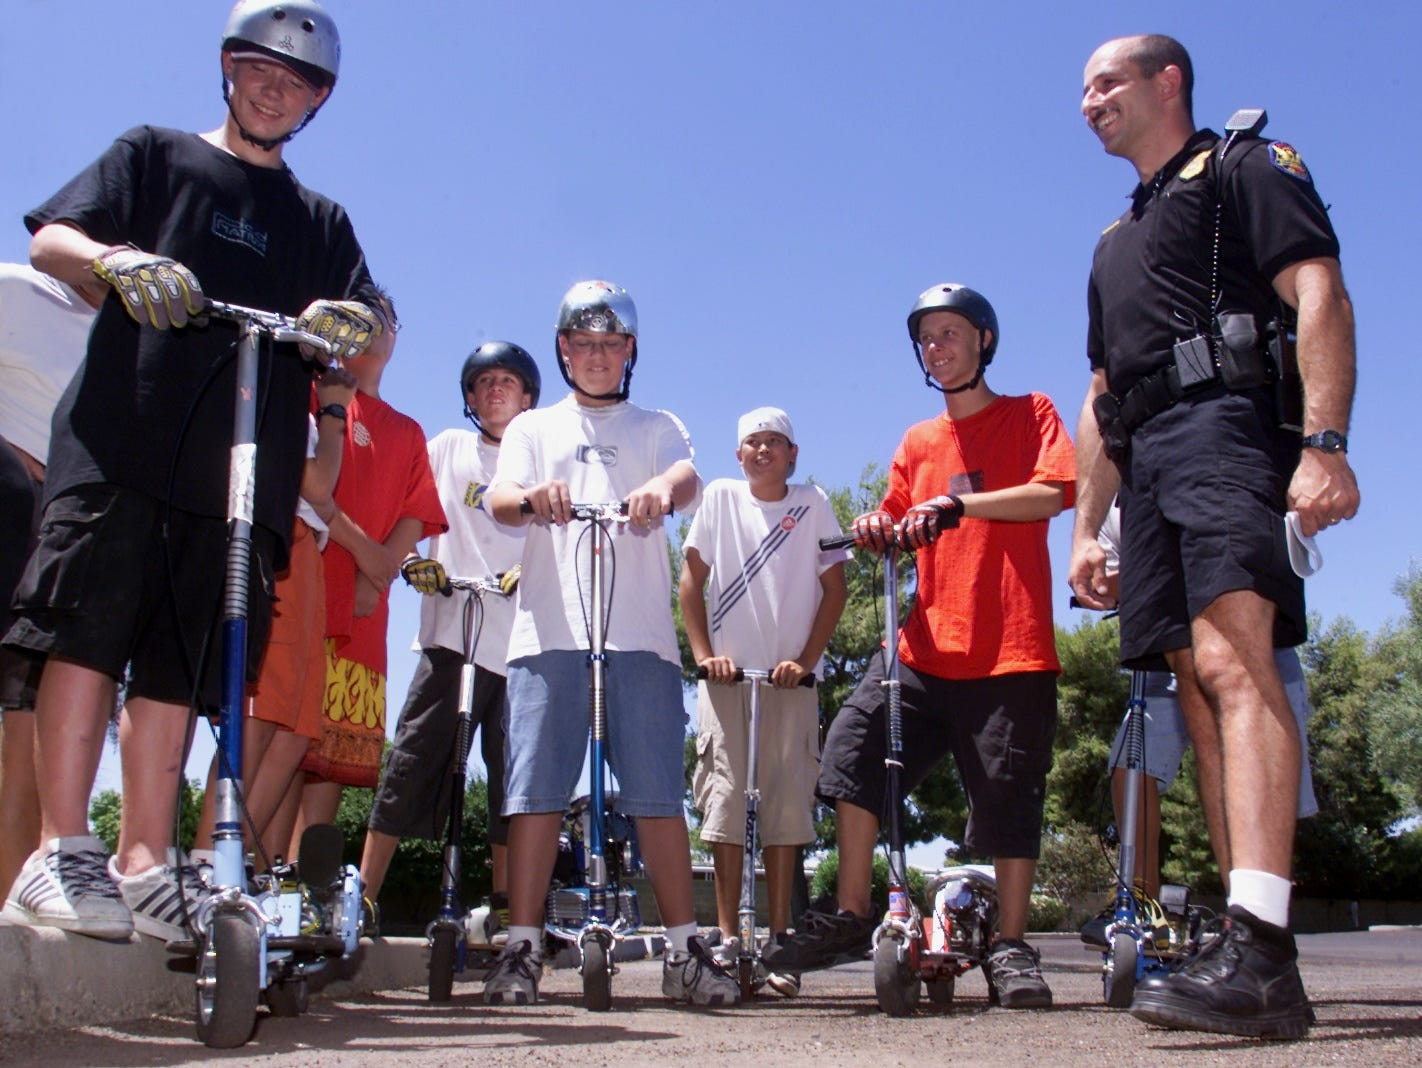 Riders of go-peds, or motorized skateboards, gather to hear Phoenix Police officer John Ferragamo give safety tips on how to use the motorized scooters safely in this 2001 file photo.